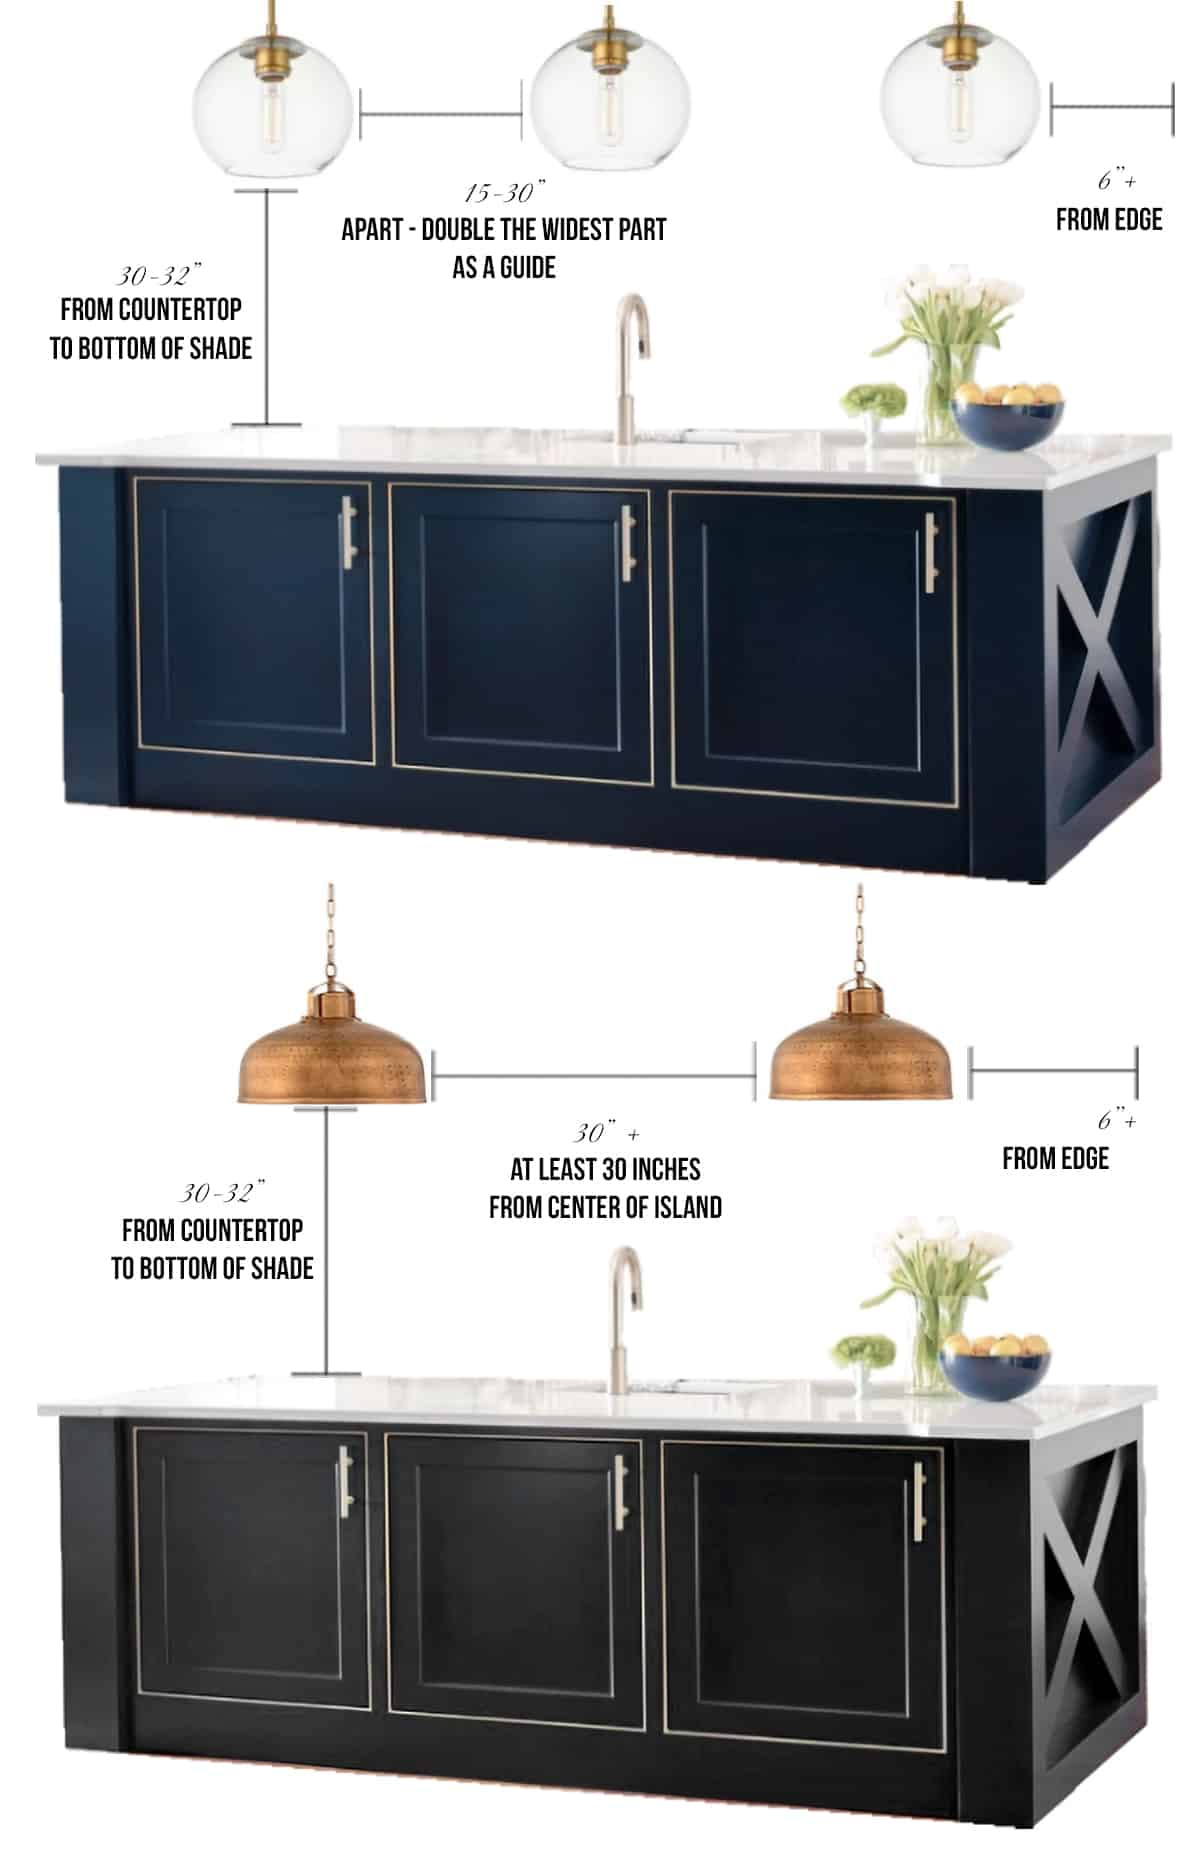 Graphic explaining how to properly measure and space pendant lighting over an island.